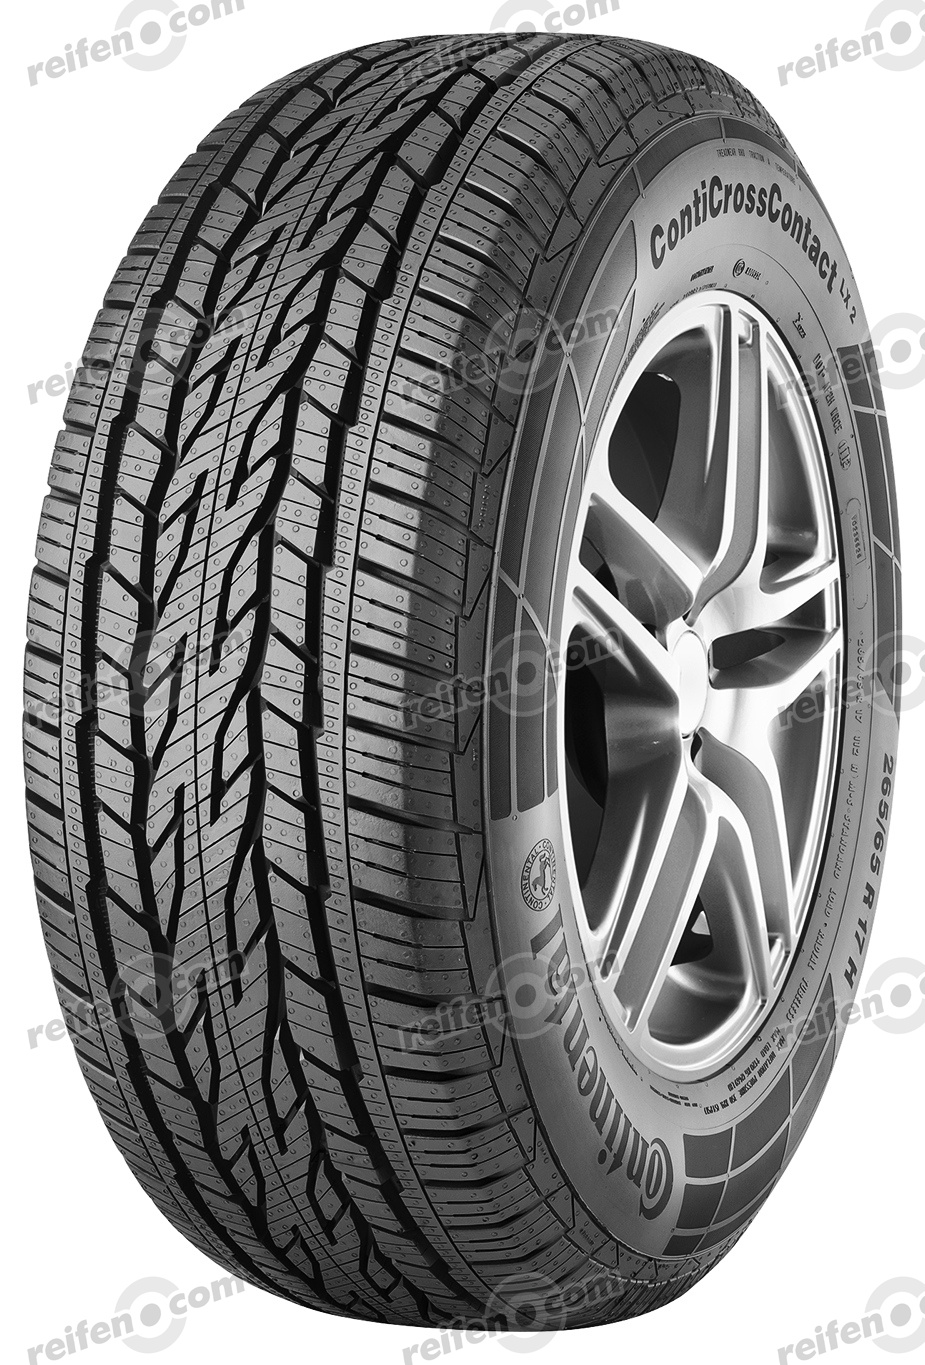 215/60 R17 96H  CrossContact LX 2 FR BSW  CrossContact LX 2 FR BSW